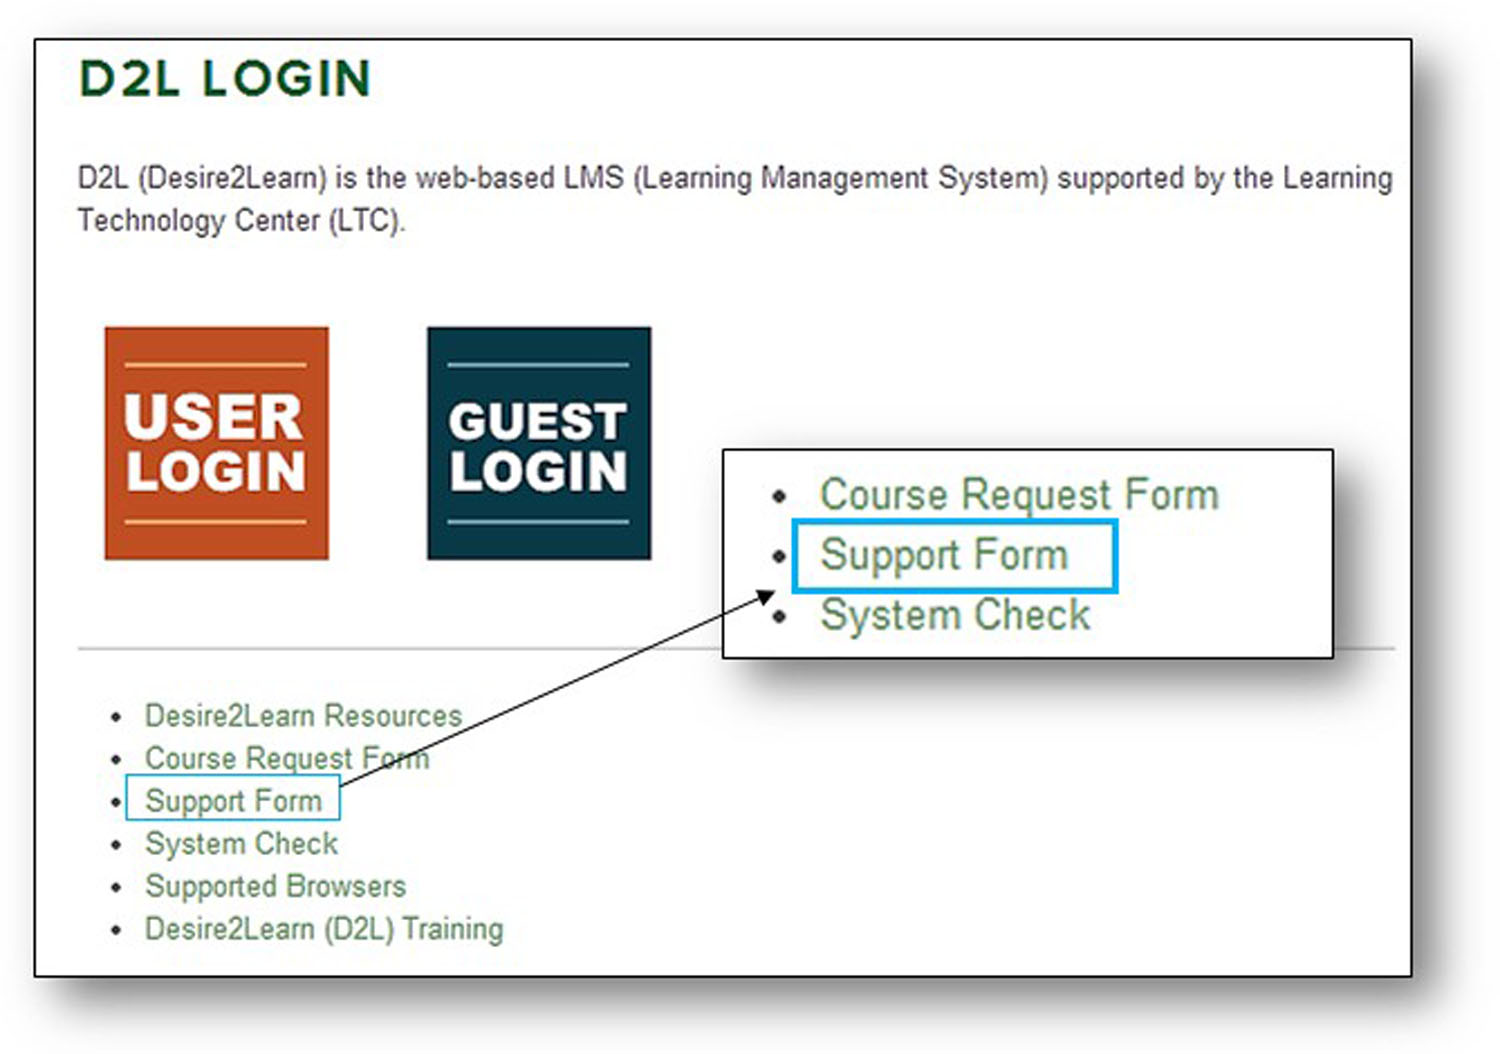 d2l support form image